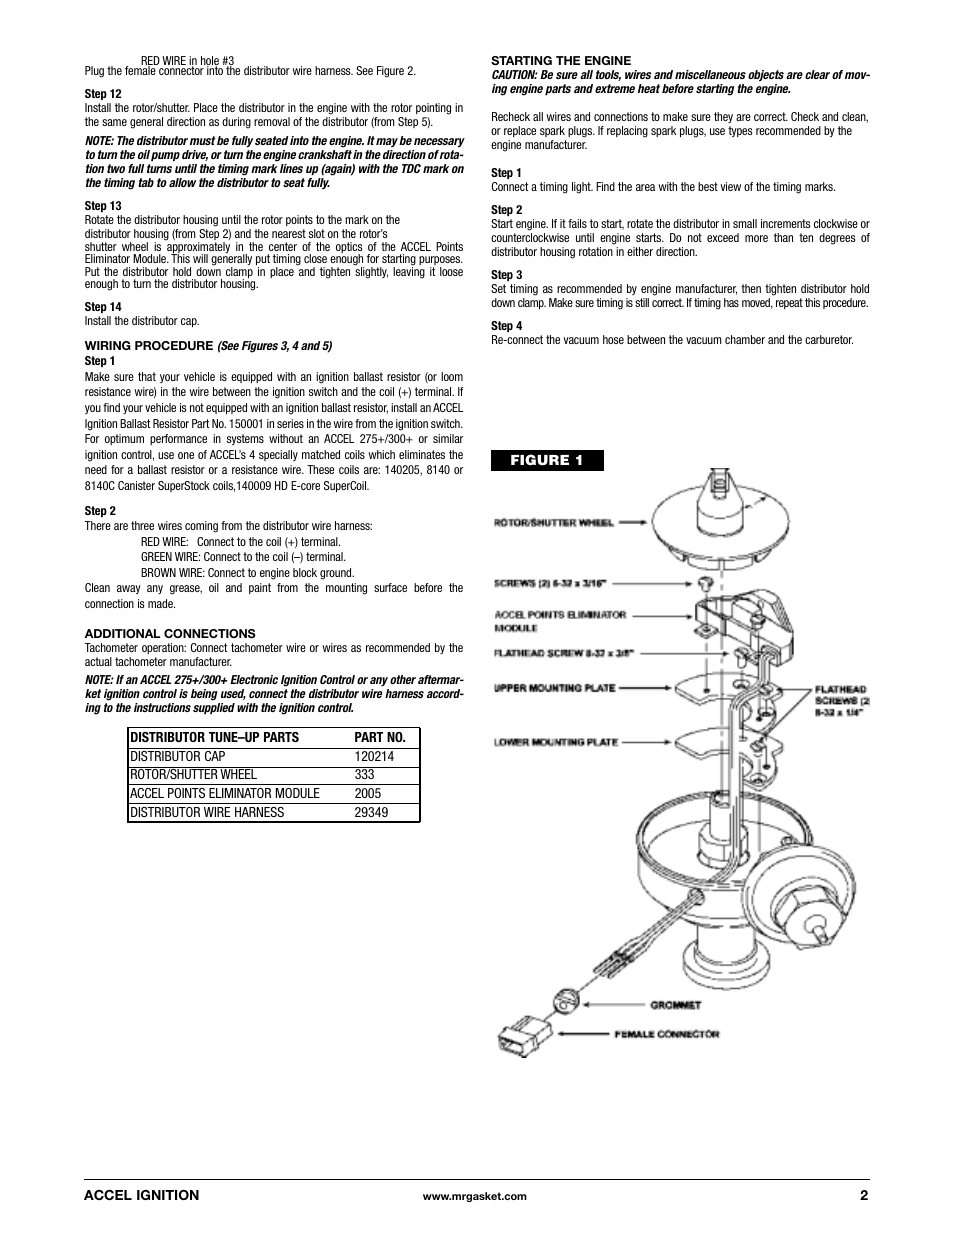 mallory electronic ignition wiring diagram mallory unilite ignition wiring diagram mallory ignition troubleshooting